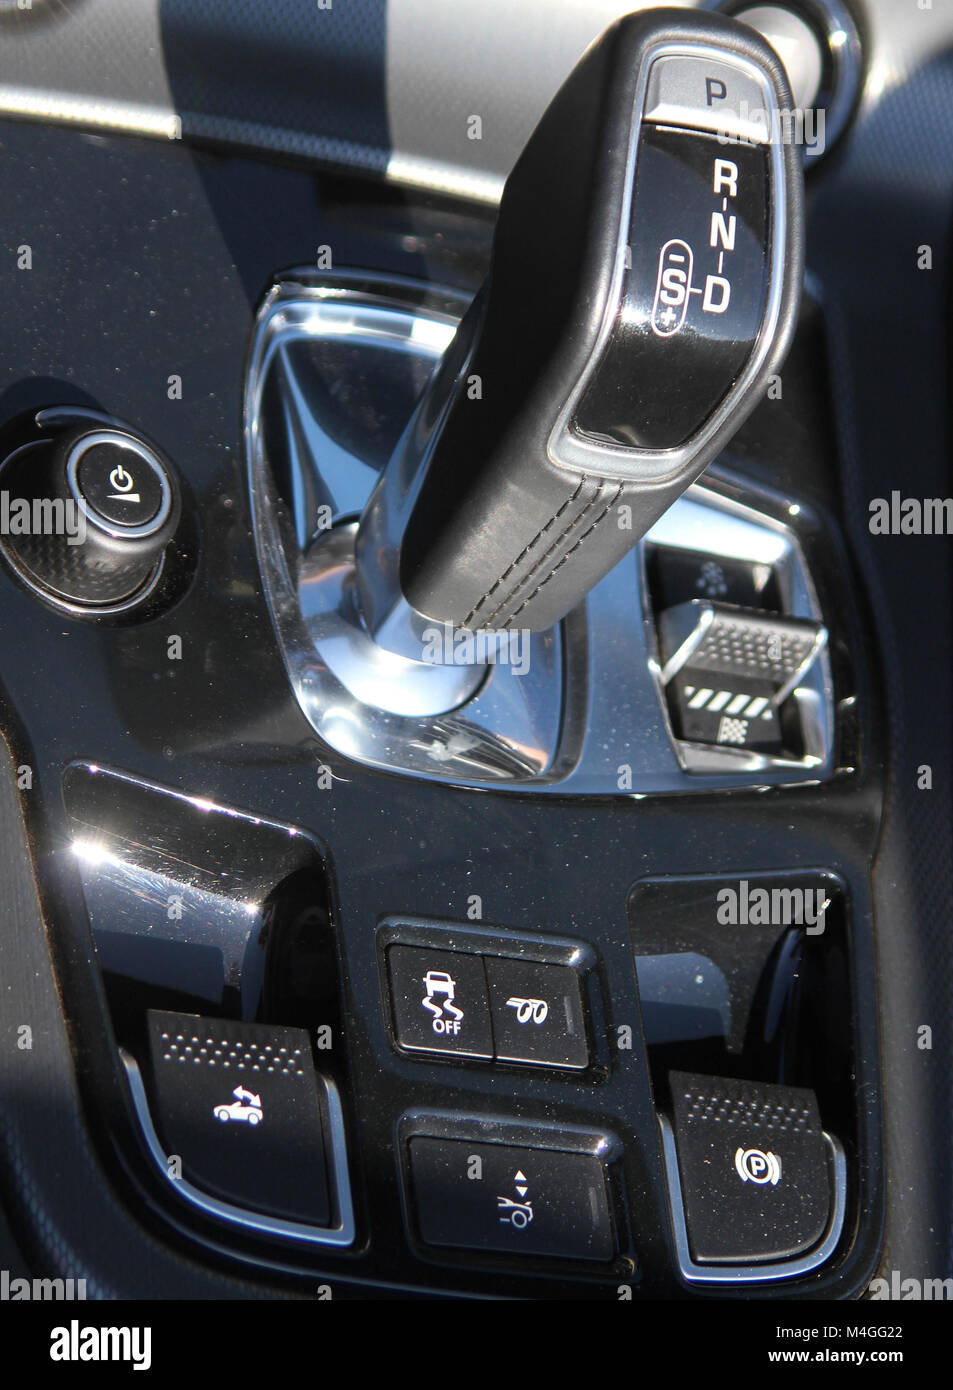 Jaguar F-Type Convertible Luxury Sports Car Gearshift, South Africa. - Stock Image